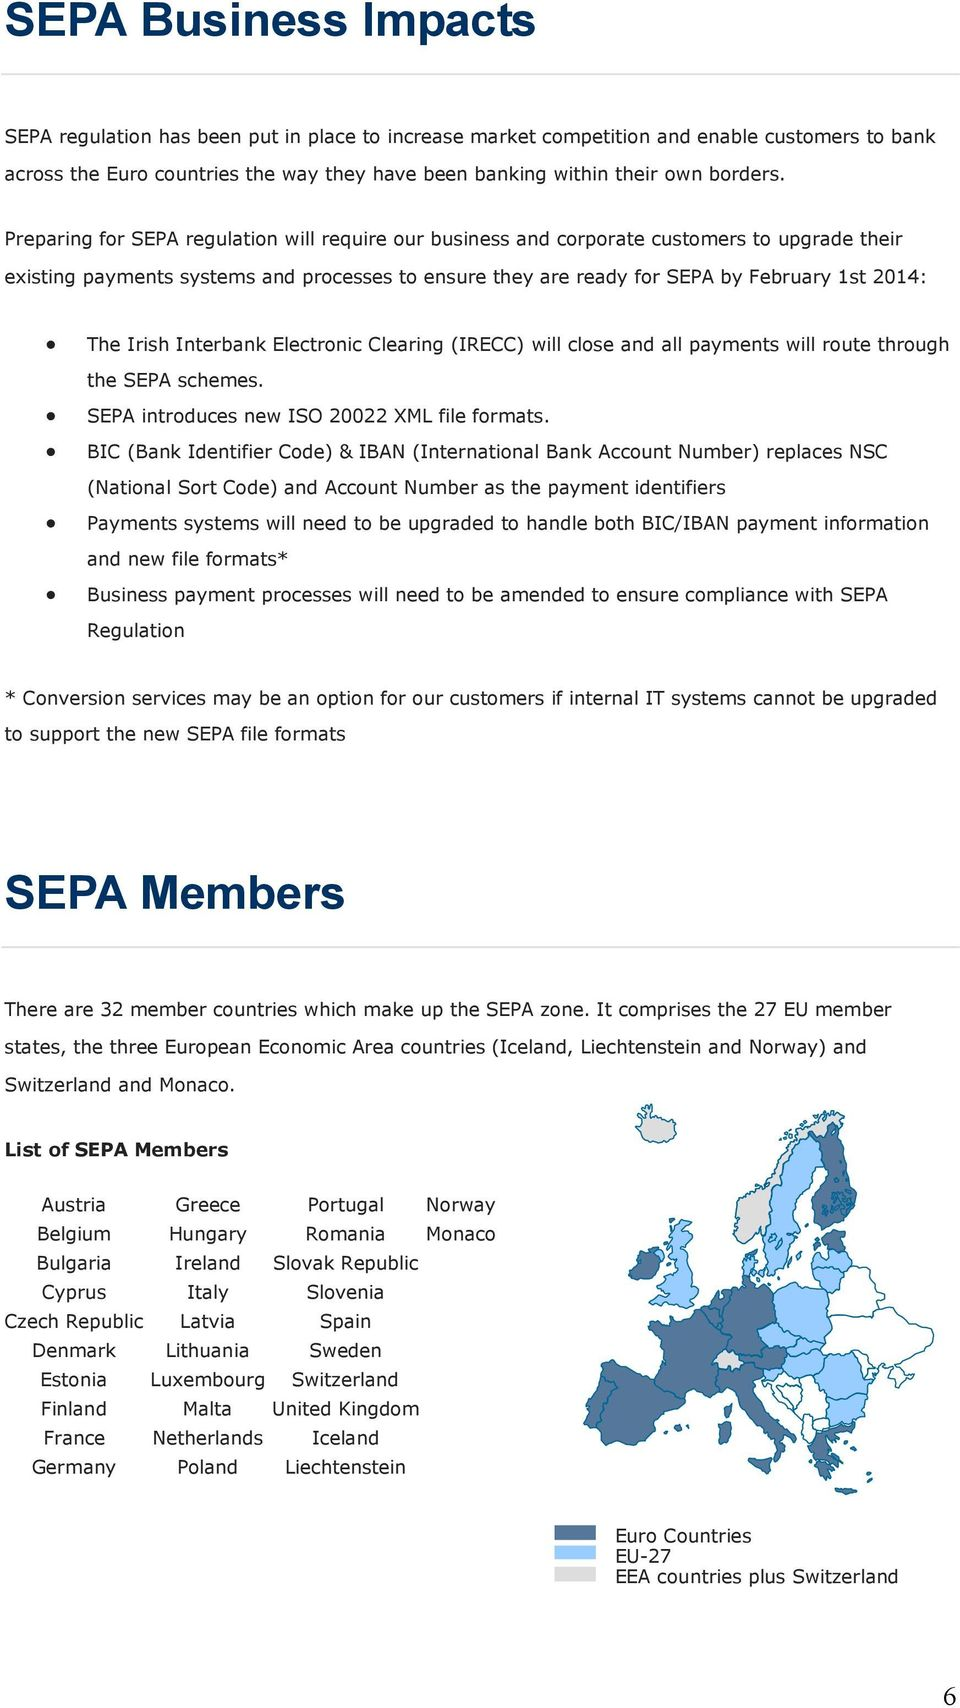 Preparing for SEPA regulation will require our business and corporate customers to upgrade their existing payments systems and processes to ensure they are ready for SEPA by February 1st 2014: The